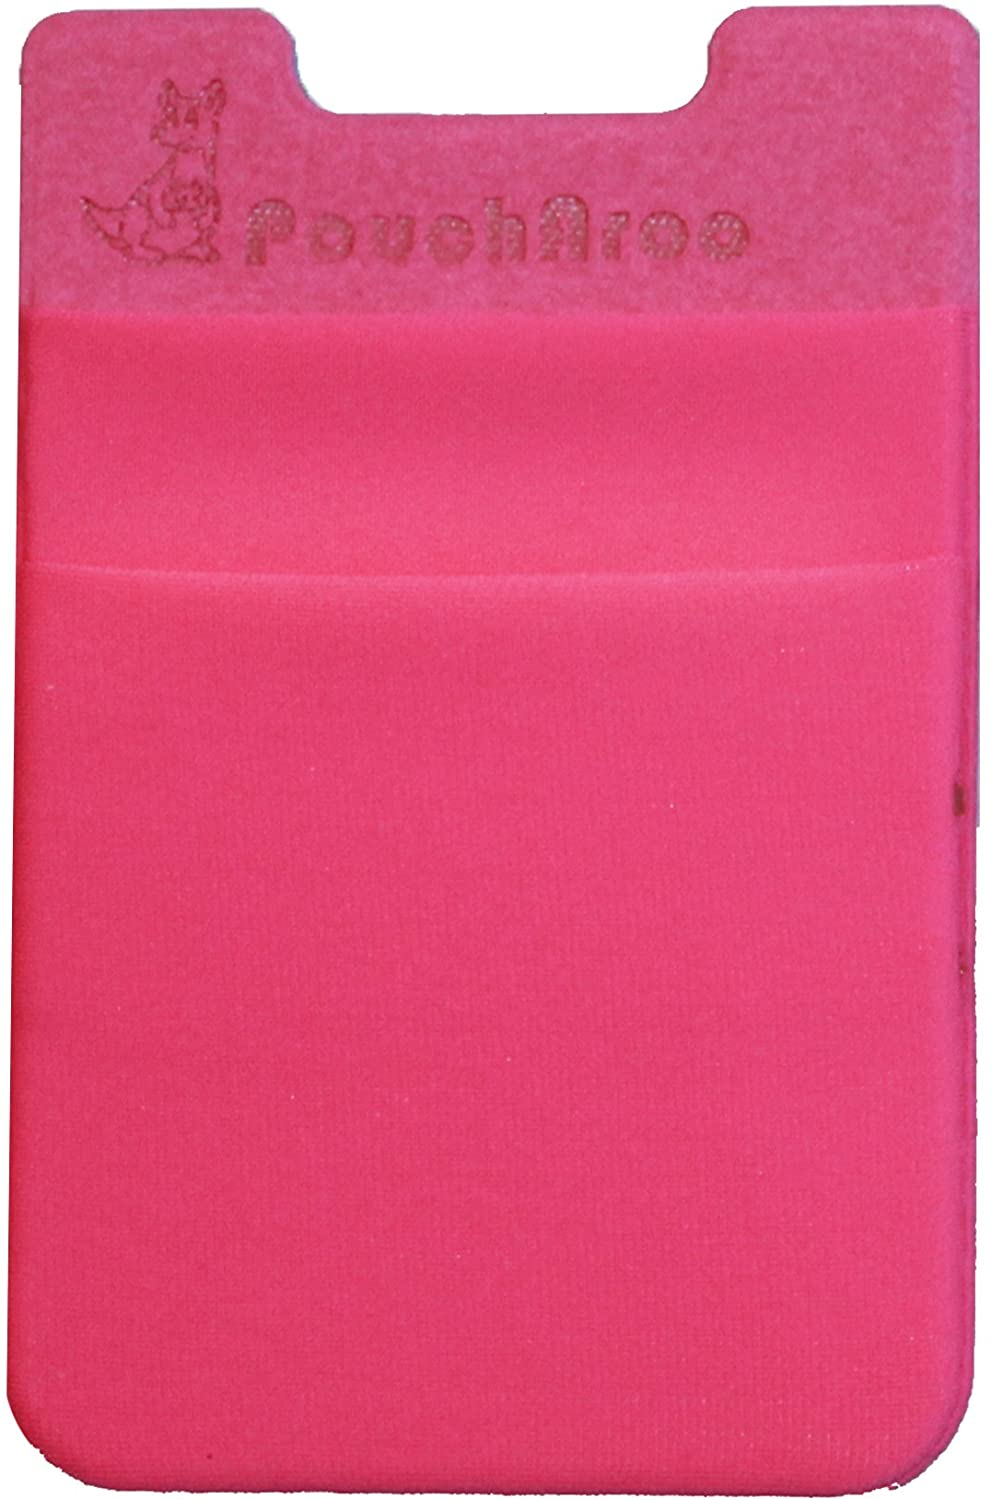 Dreamtex Home Poucharoo Stick-On Wallet for Smartphone (1 Pack), Hot Pink